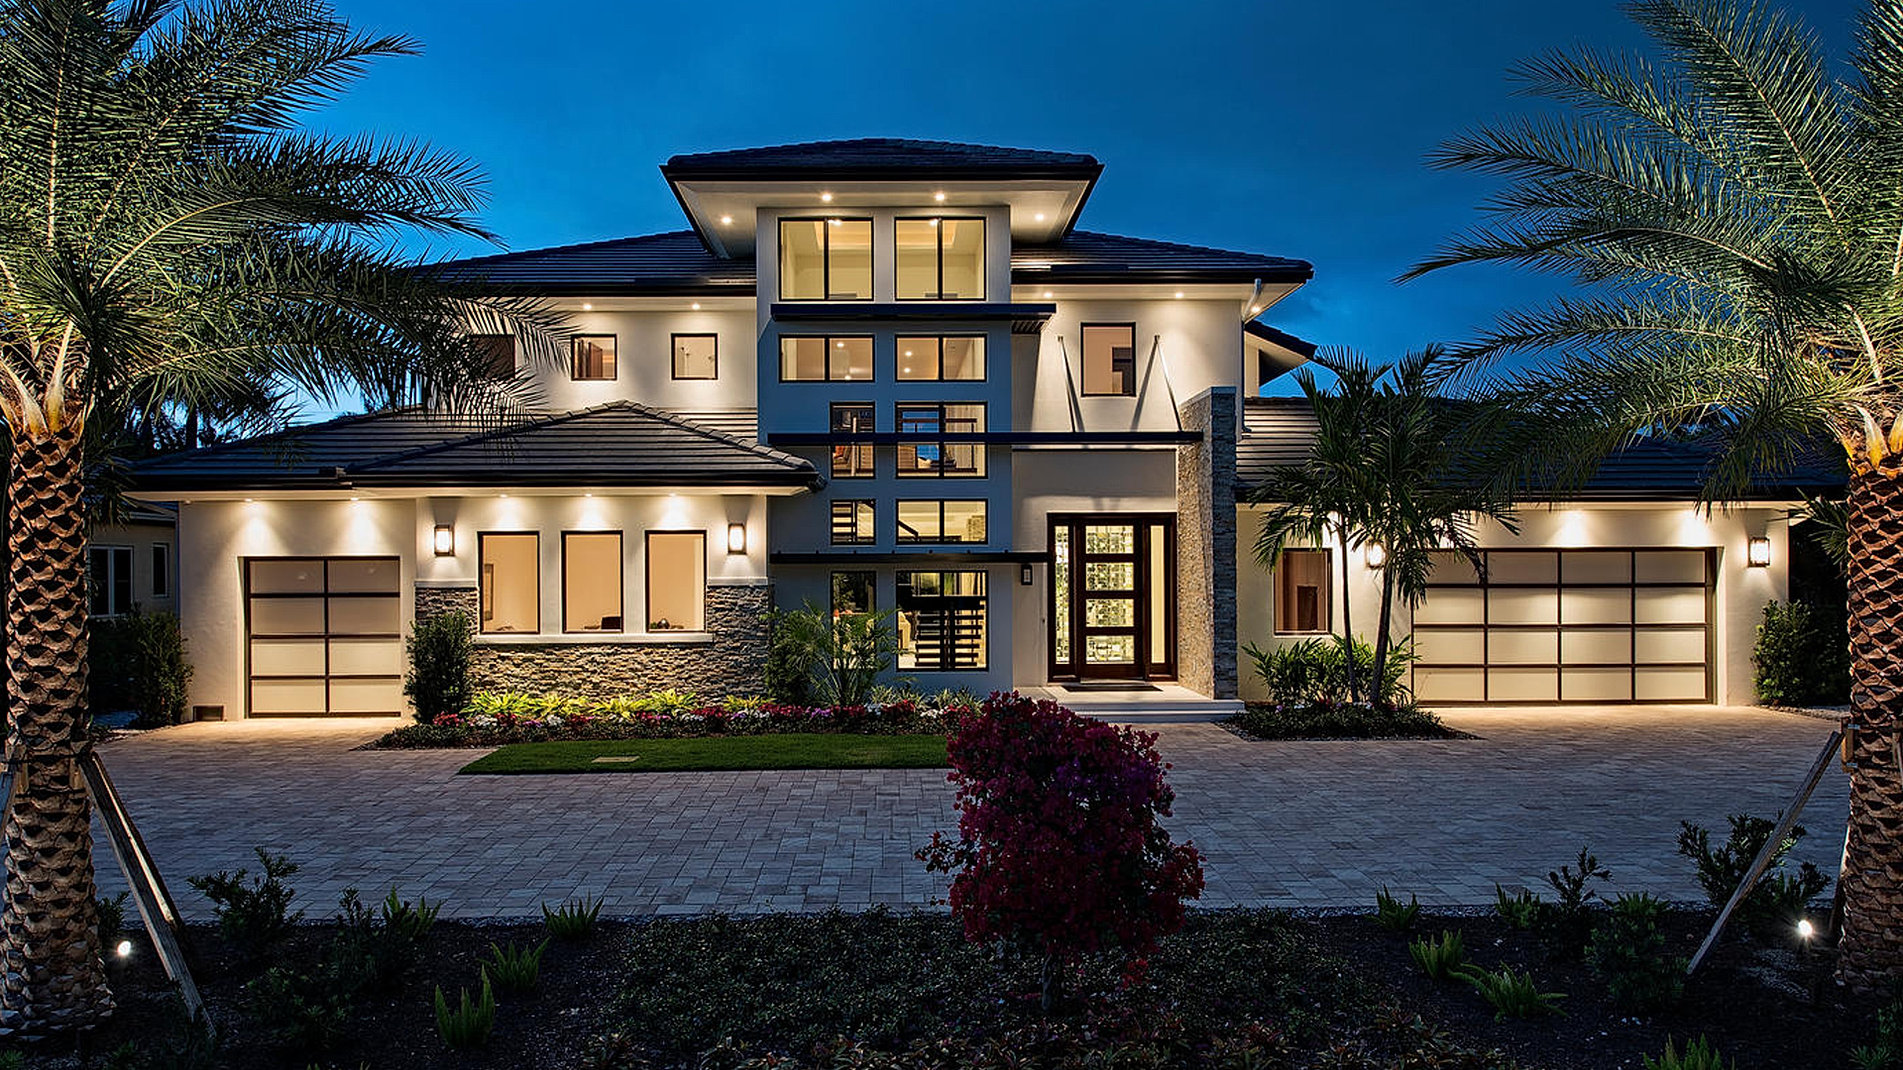 Luxury Home Interior: Custom Luxury Homes, Naples FL